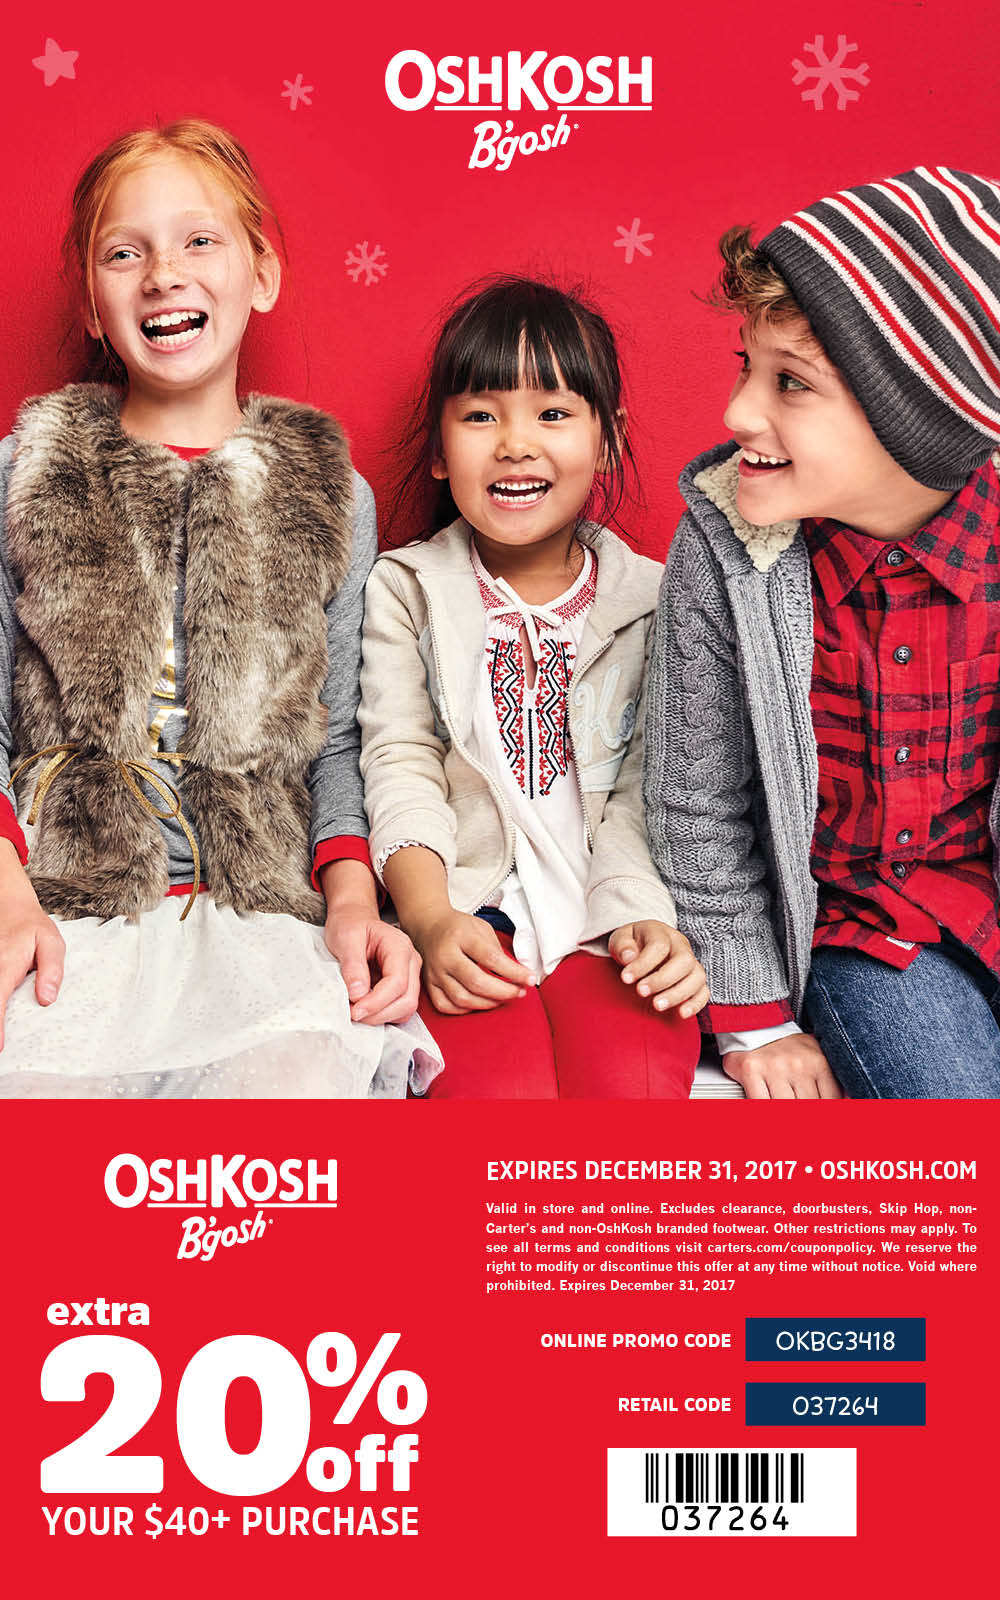 OshKosh Holiday Coupon 2017